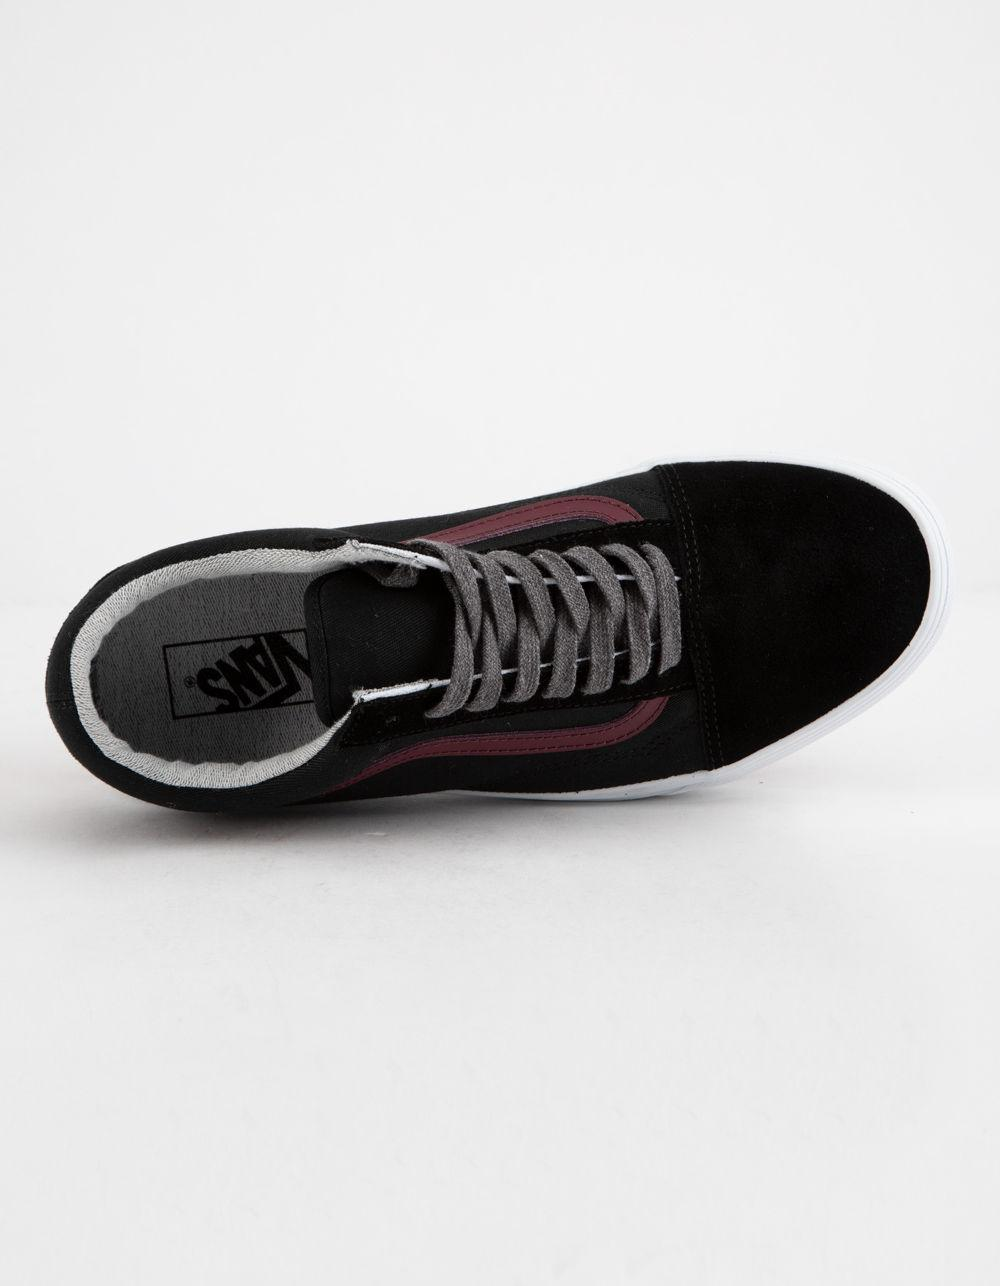 ab263ddd51 Lyst - Vans Jersey Lace Old Skool Black   Port Shoes in Black for Men